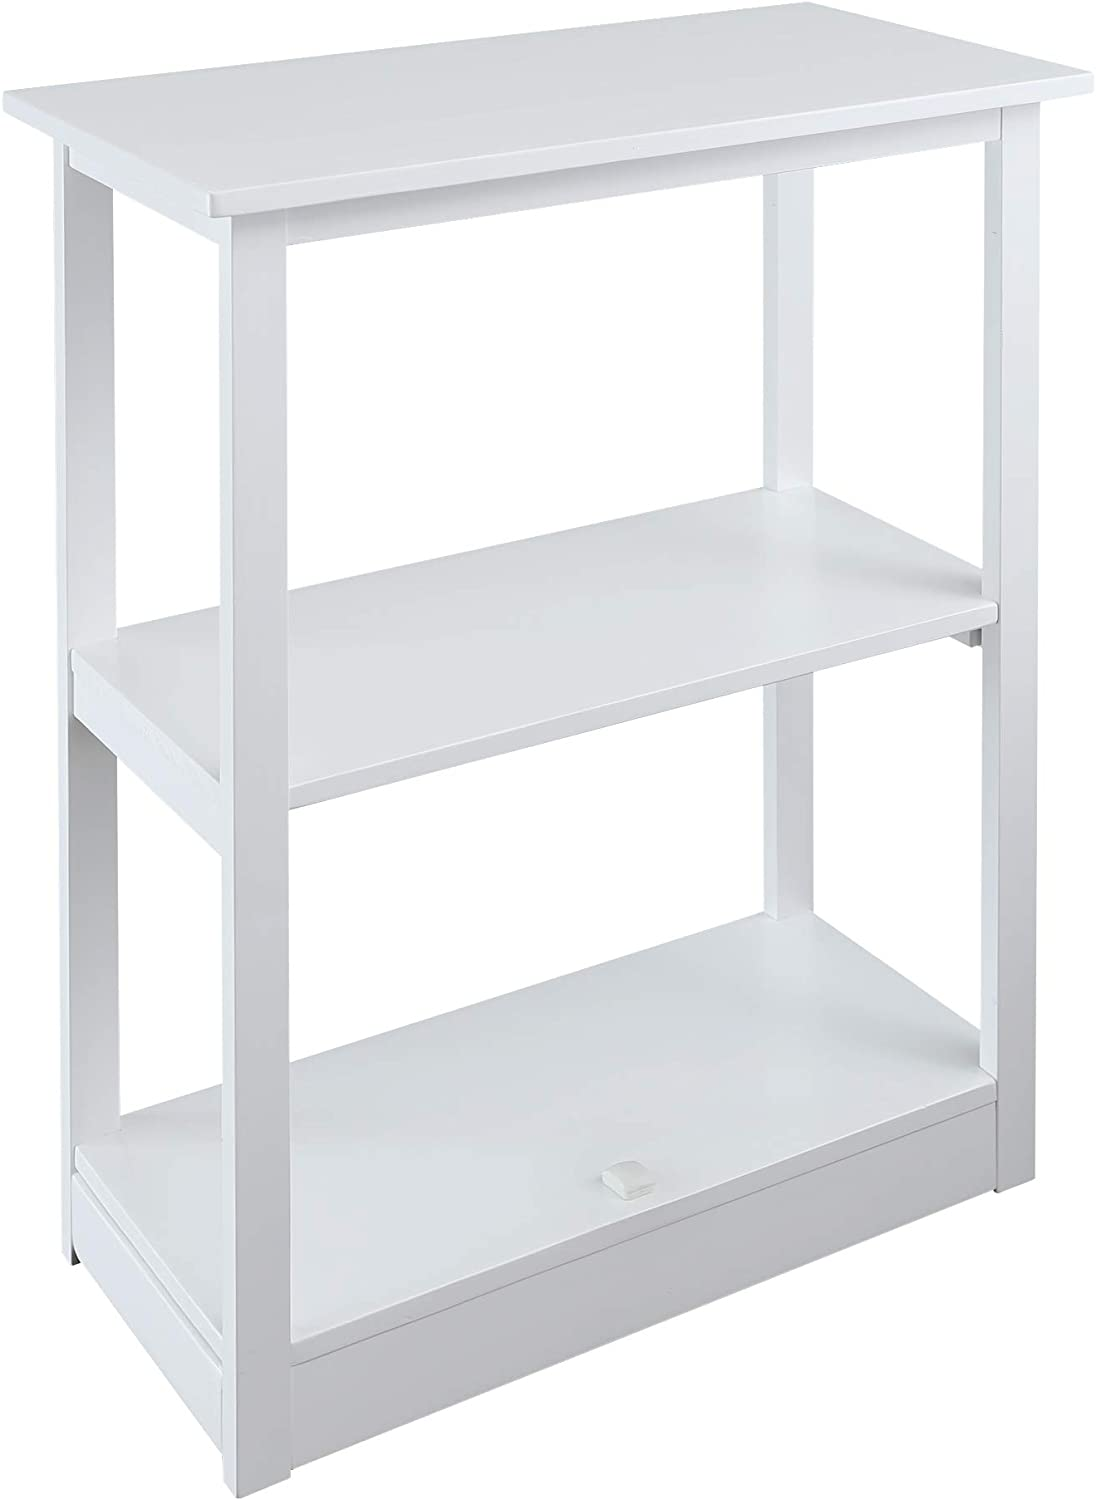 Casual Home Adams Bookcase Sliding Track, Concealment Furniture, White